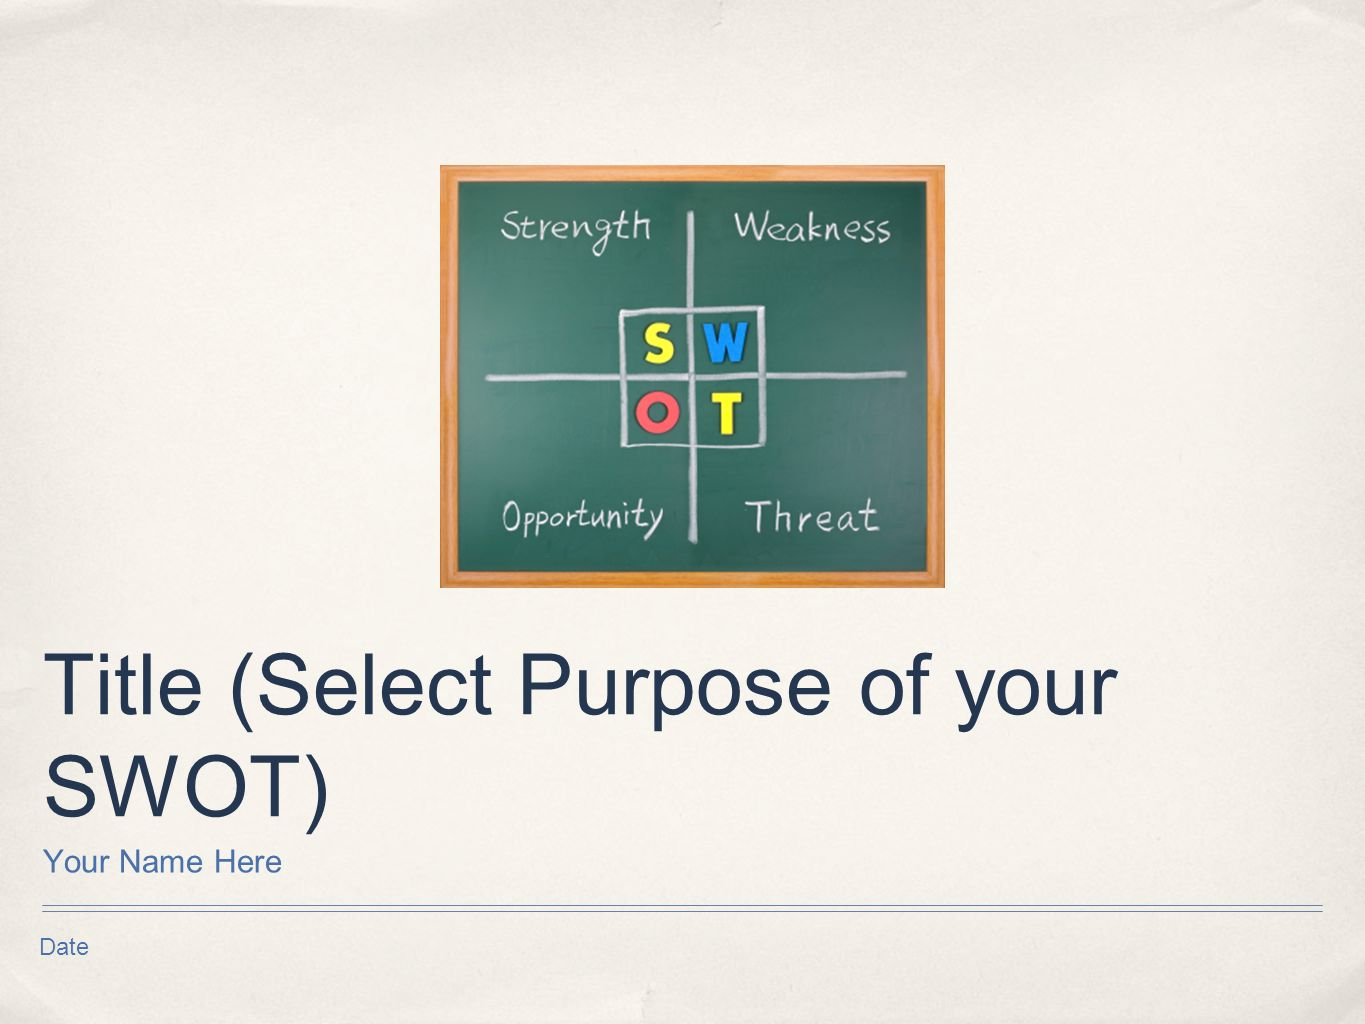 Date Title (Select Purpose of your SWOT) Your Name Here